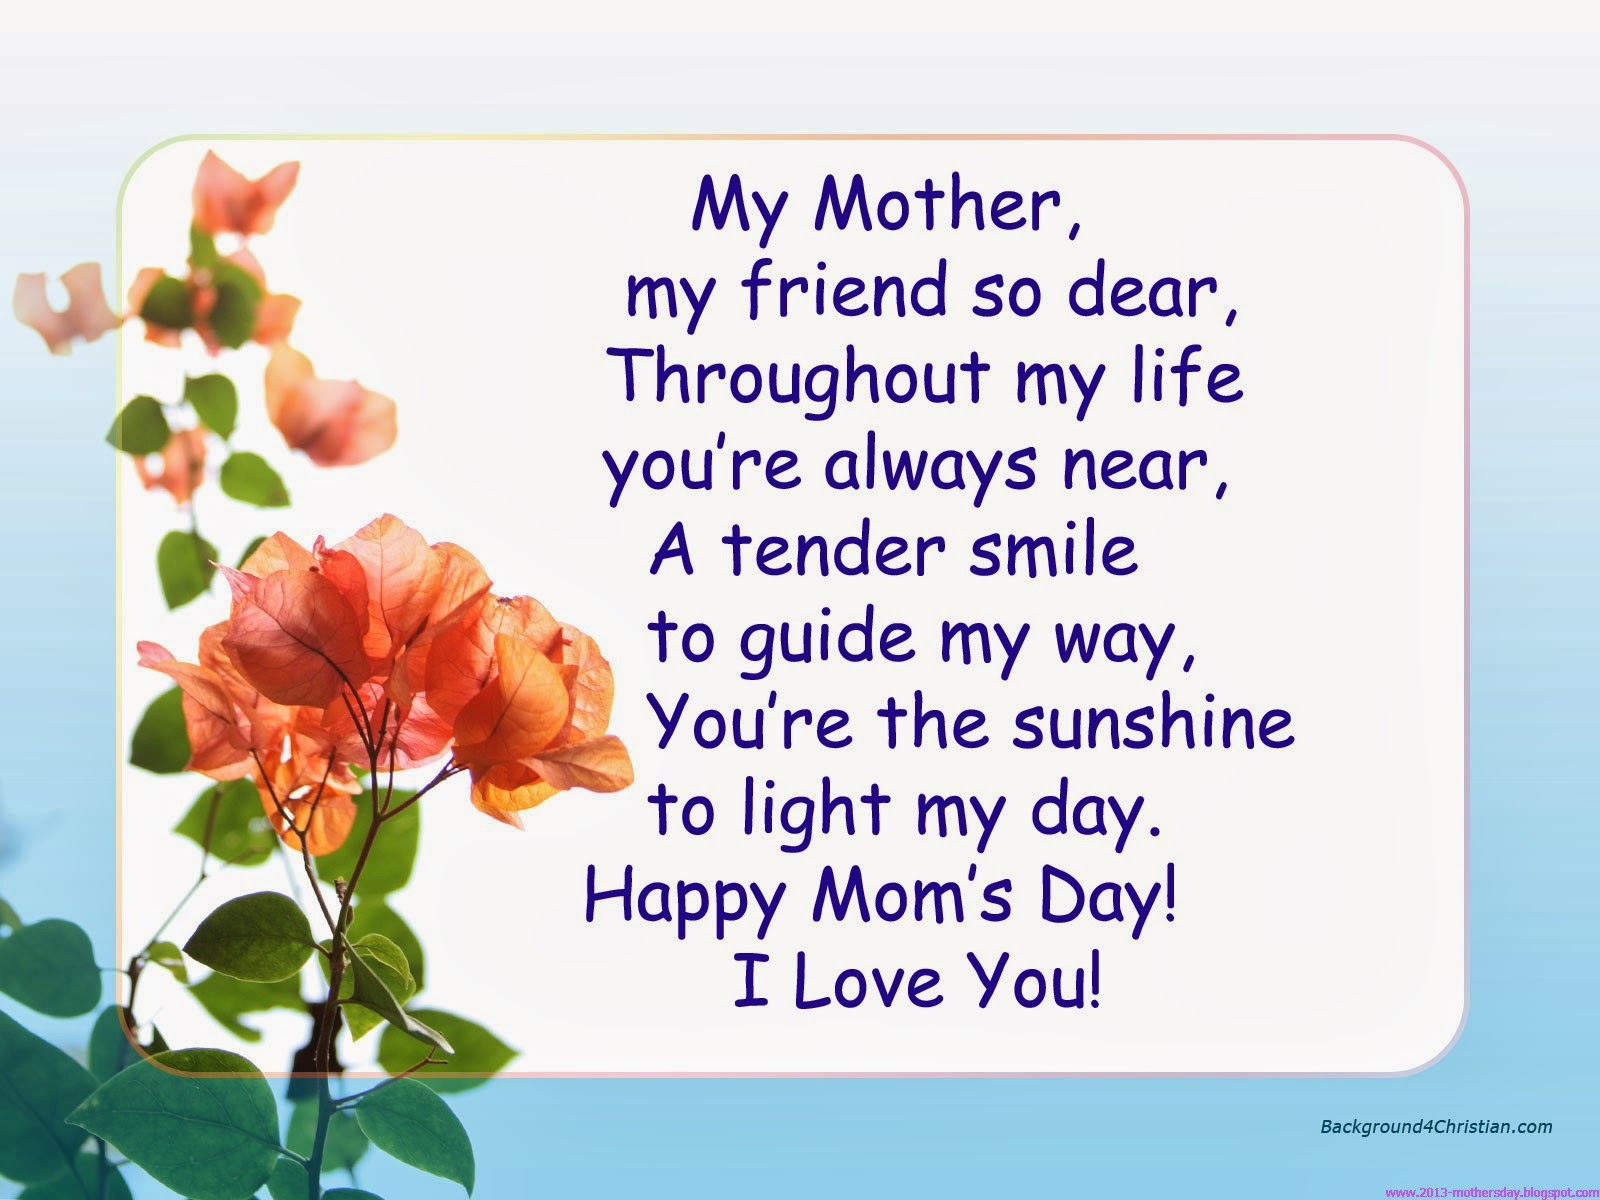 Mothers day image for quotes